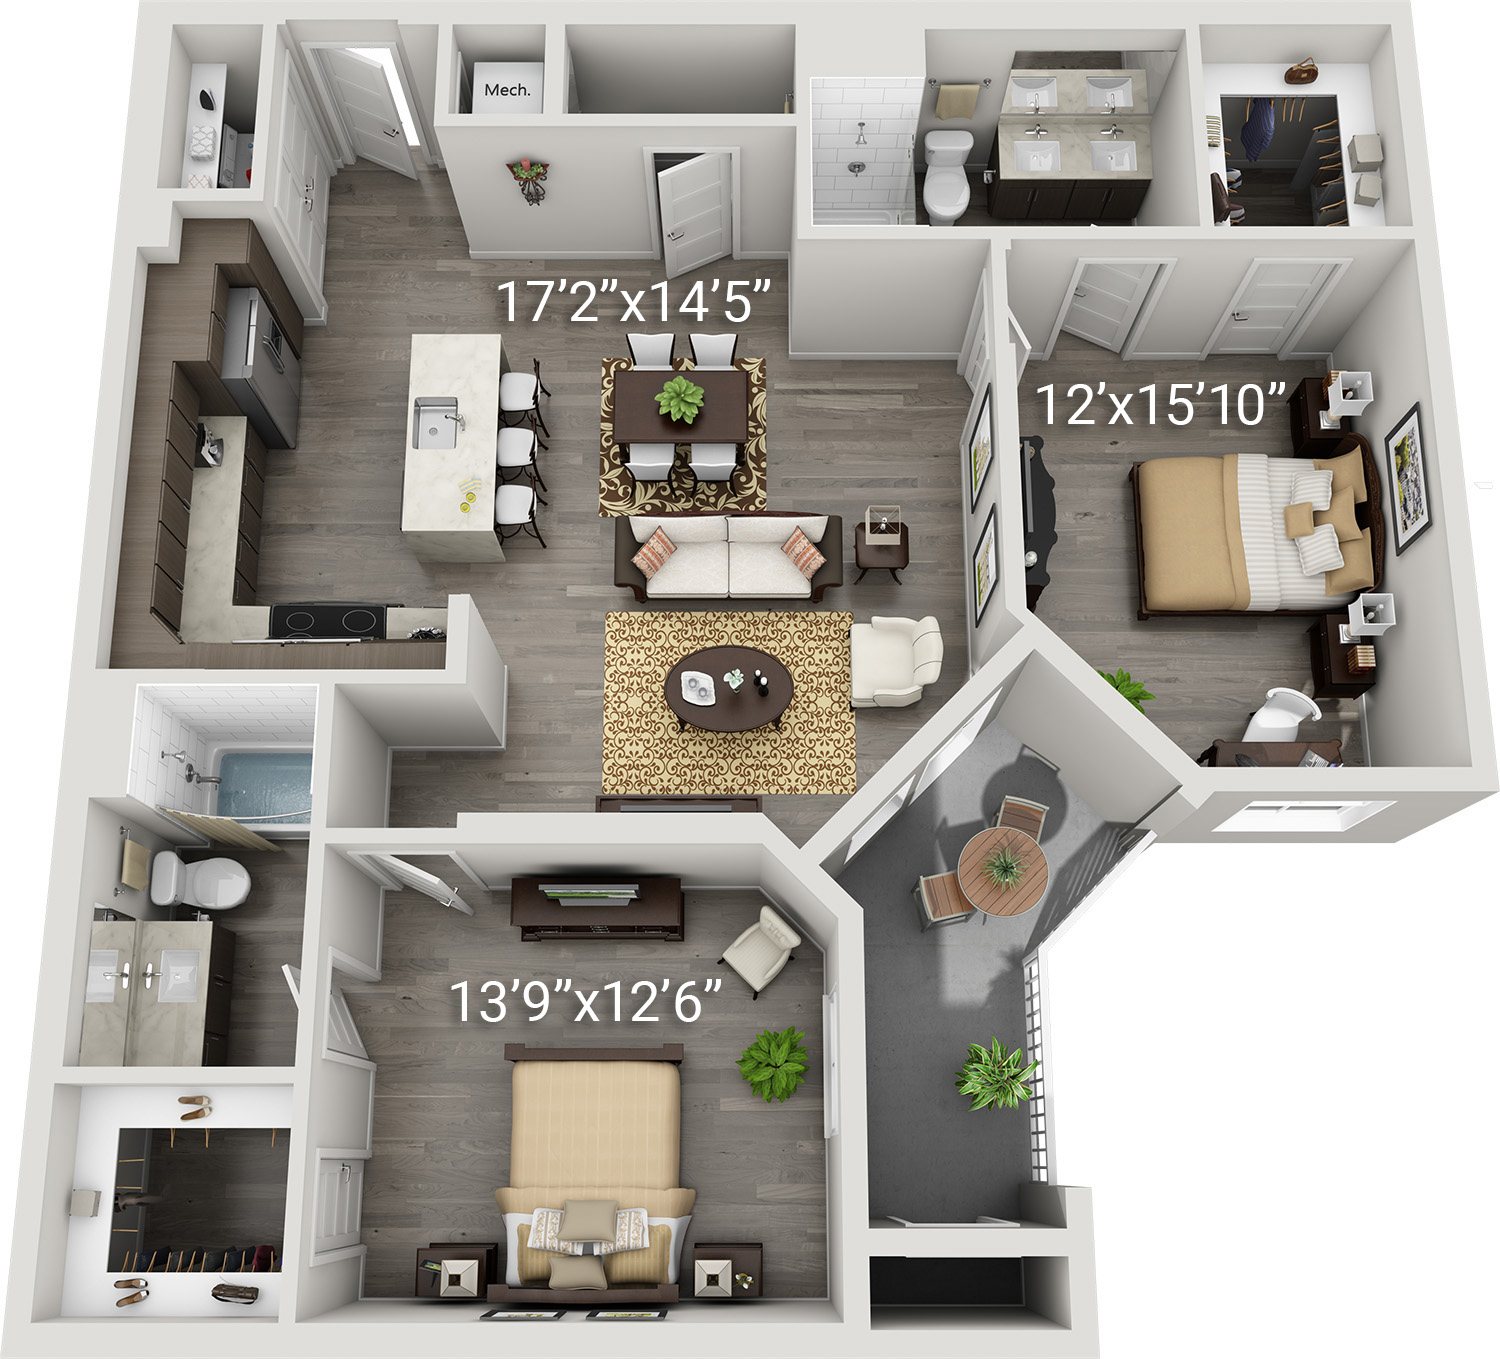 2 Bedroom 2 Bath<br>(Baronissi - B1)